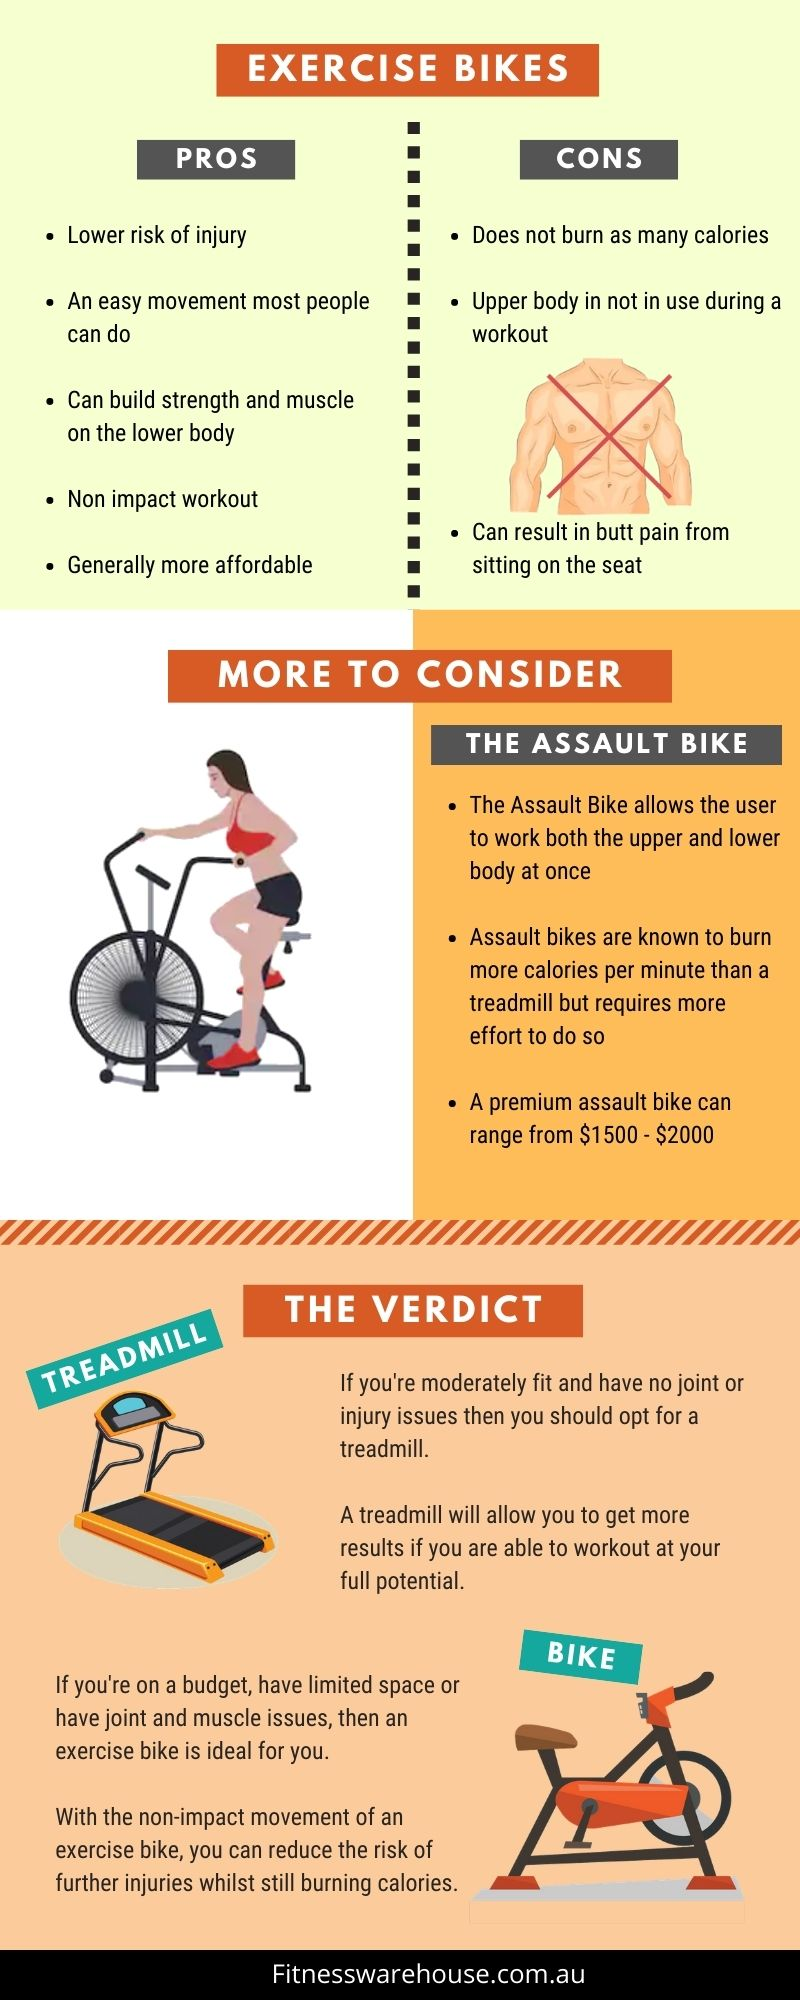 treadmill-vs-exercise-bike-which-one-will-get-you-more-results2